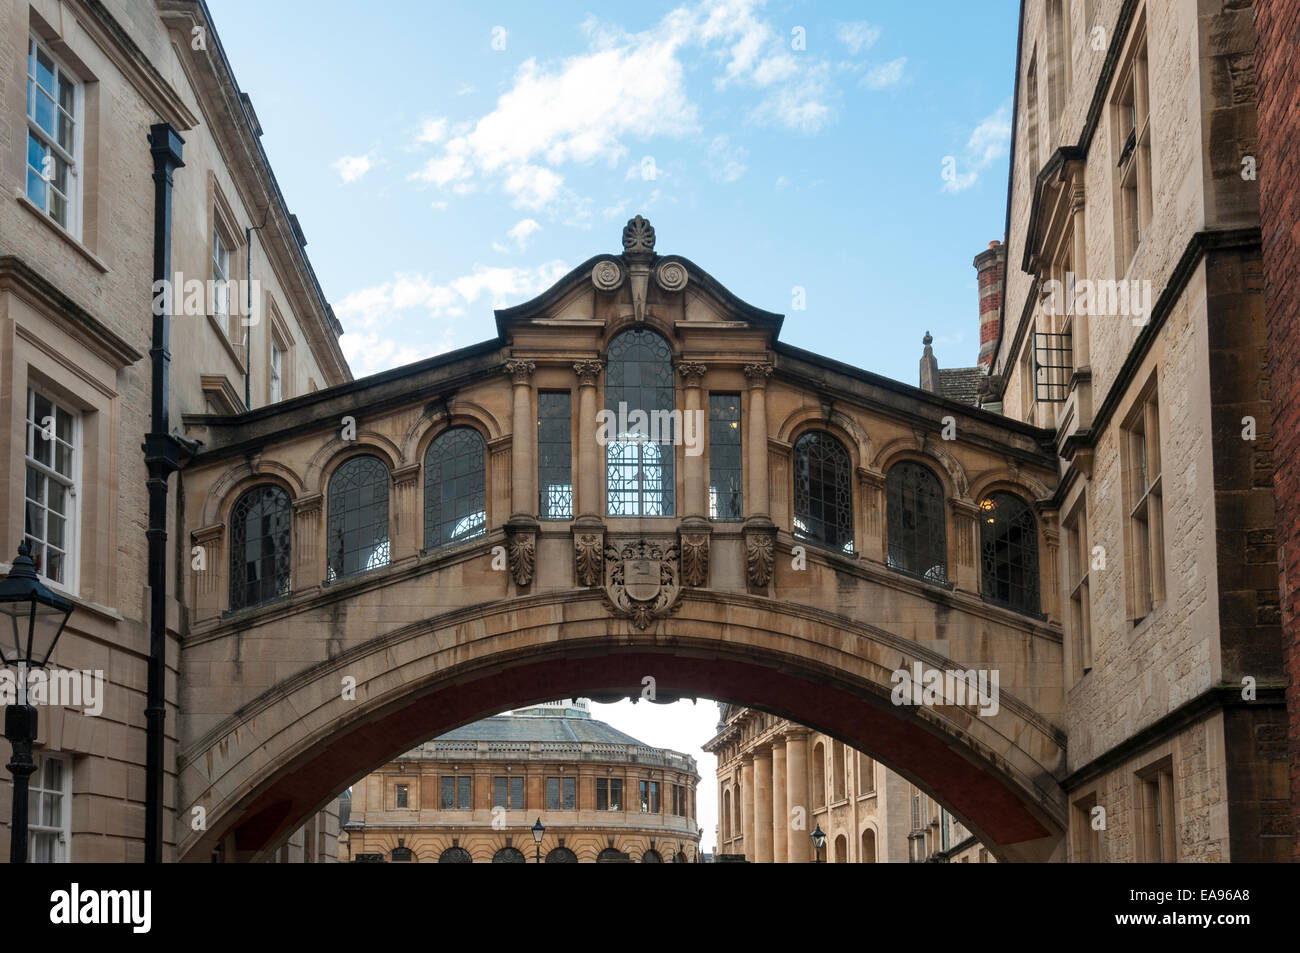 Hertford The Bridge of Sighs New College Lane Oxford - Stock Image